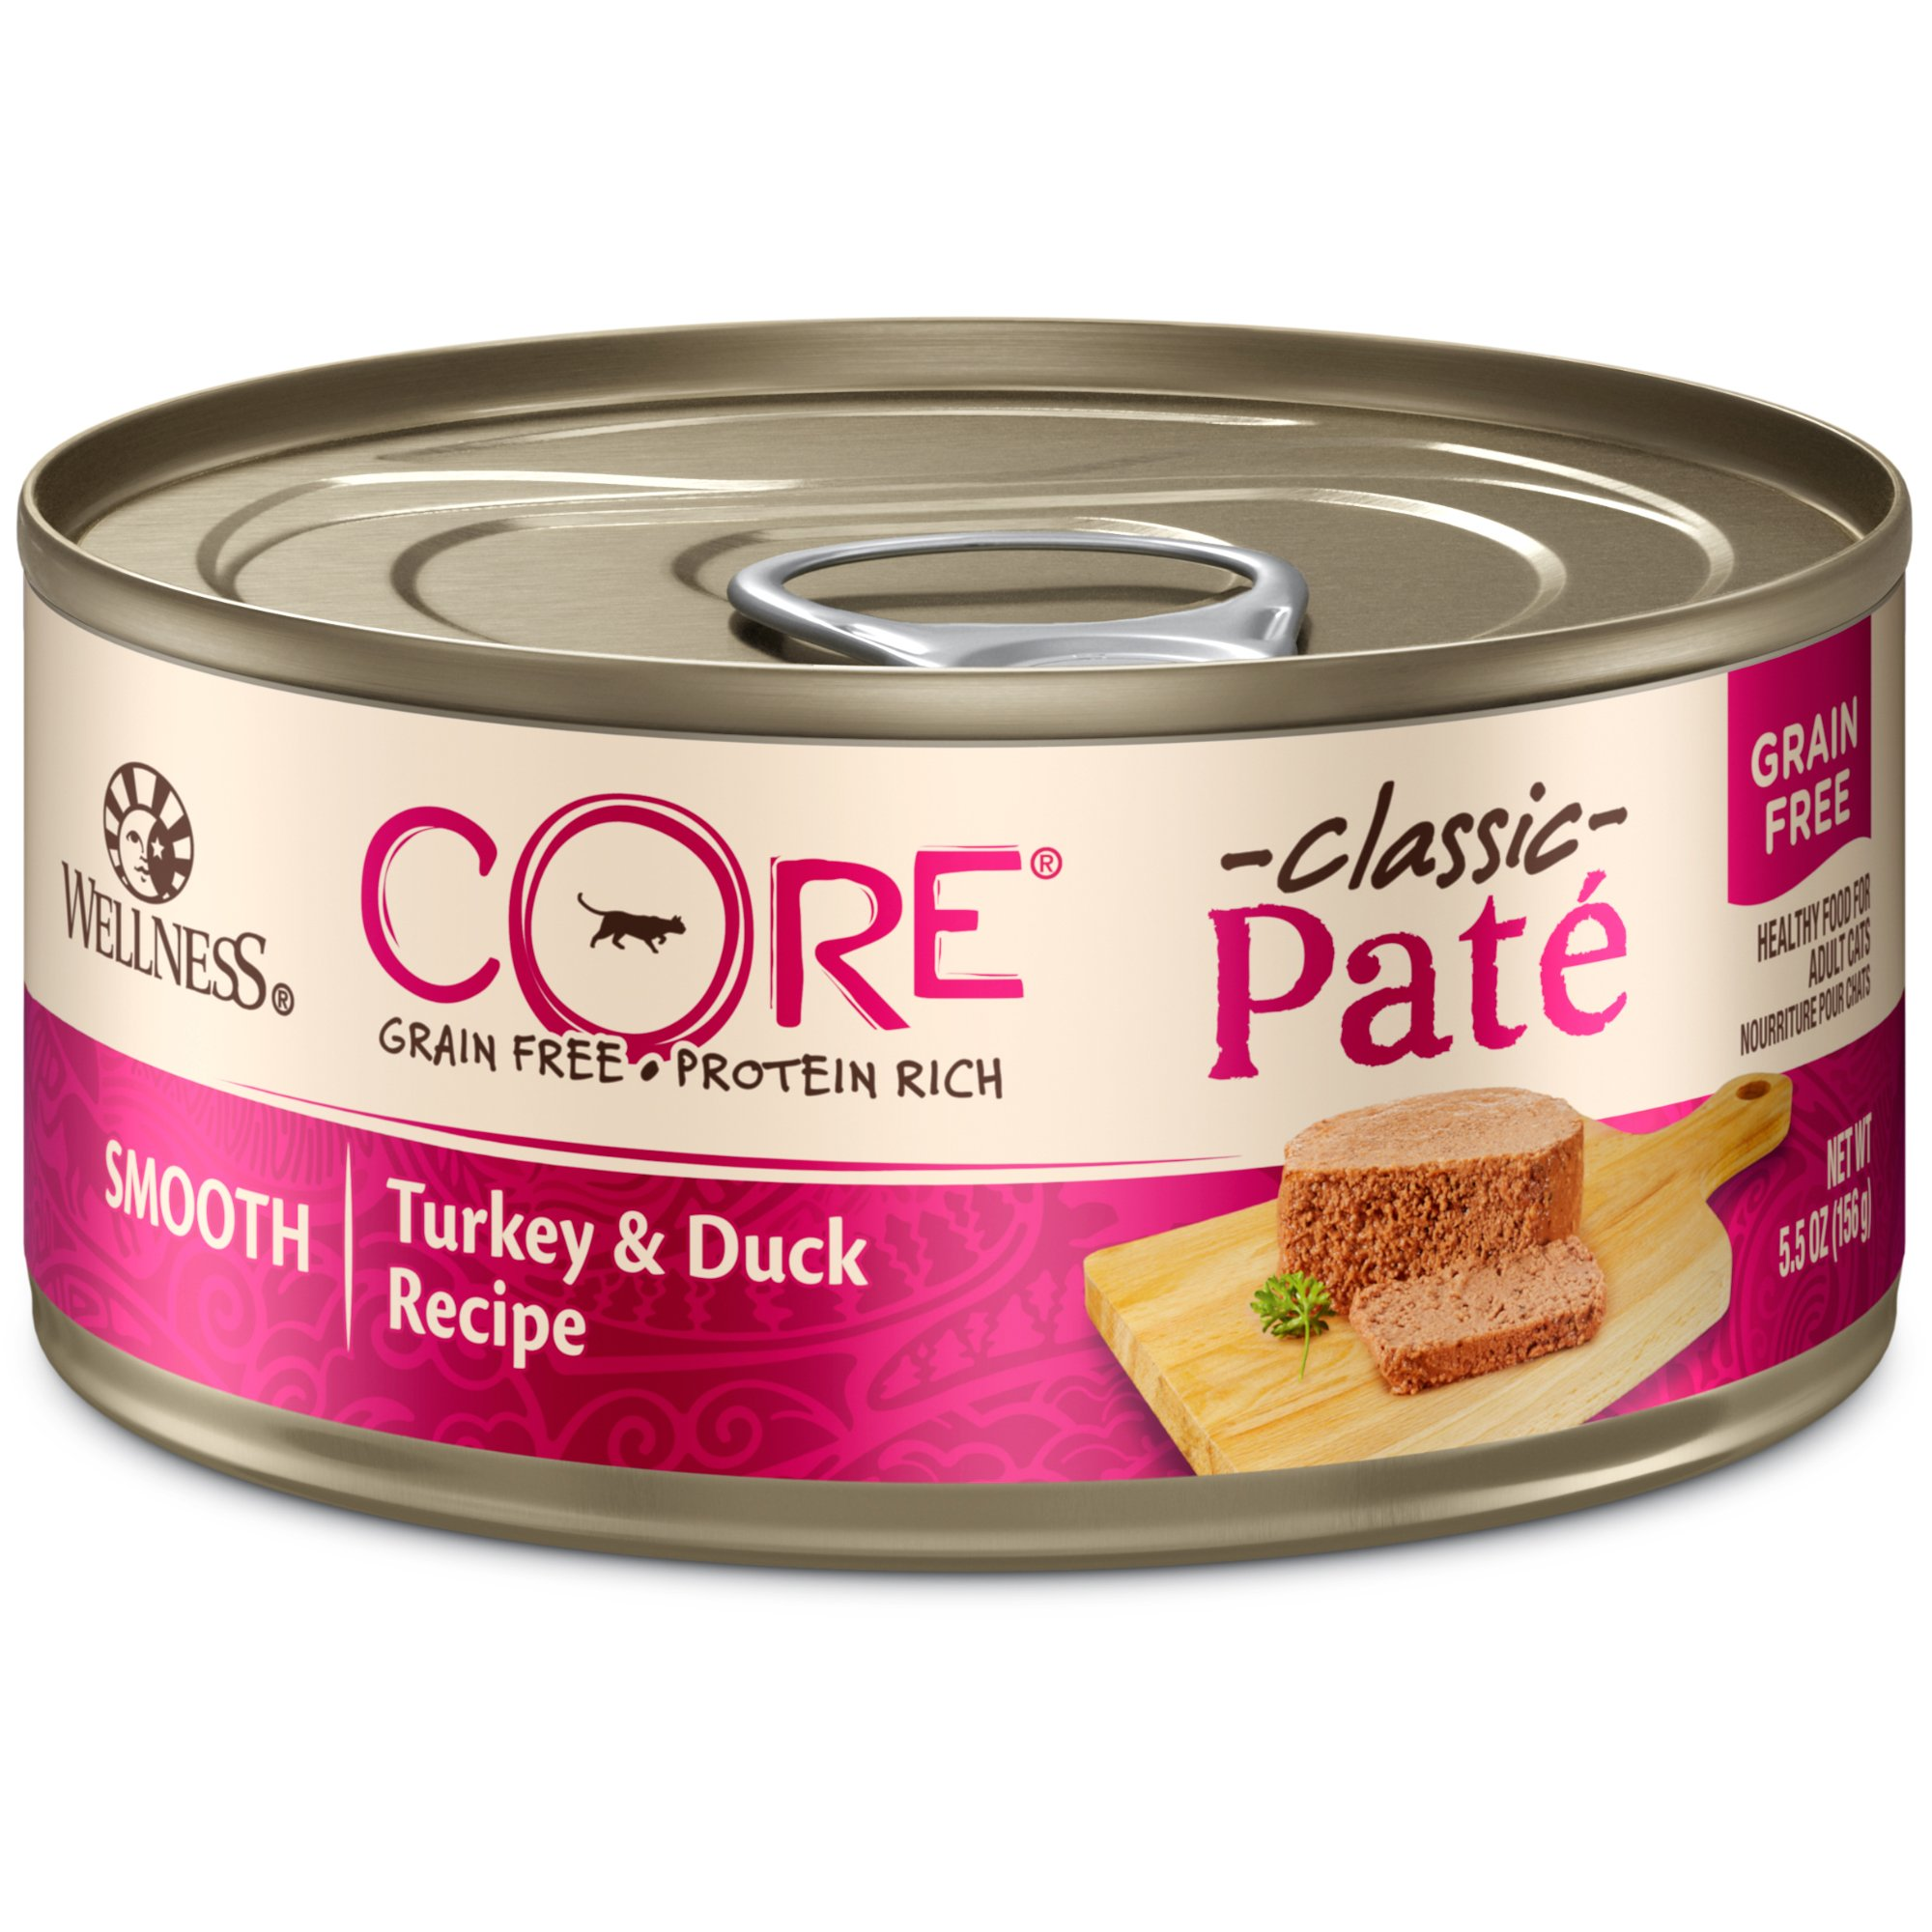 Wellness Core Natural Grain Free Wet Canned Cat Food, Turkey & Duck, 5.5-Ounce Can, Pack Of 24 by WELLNESS CORE (Image #1)